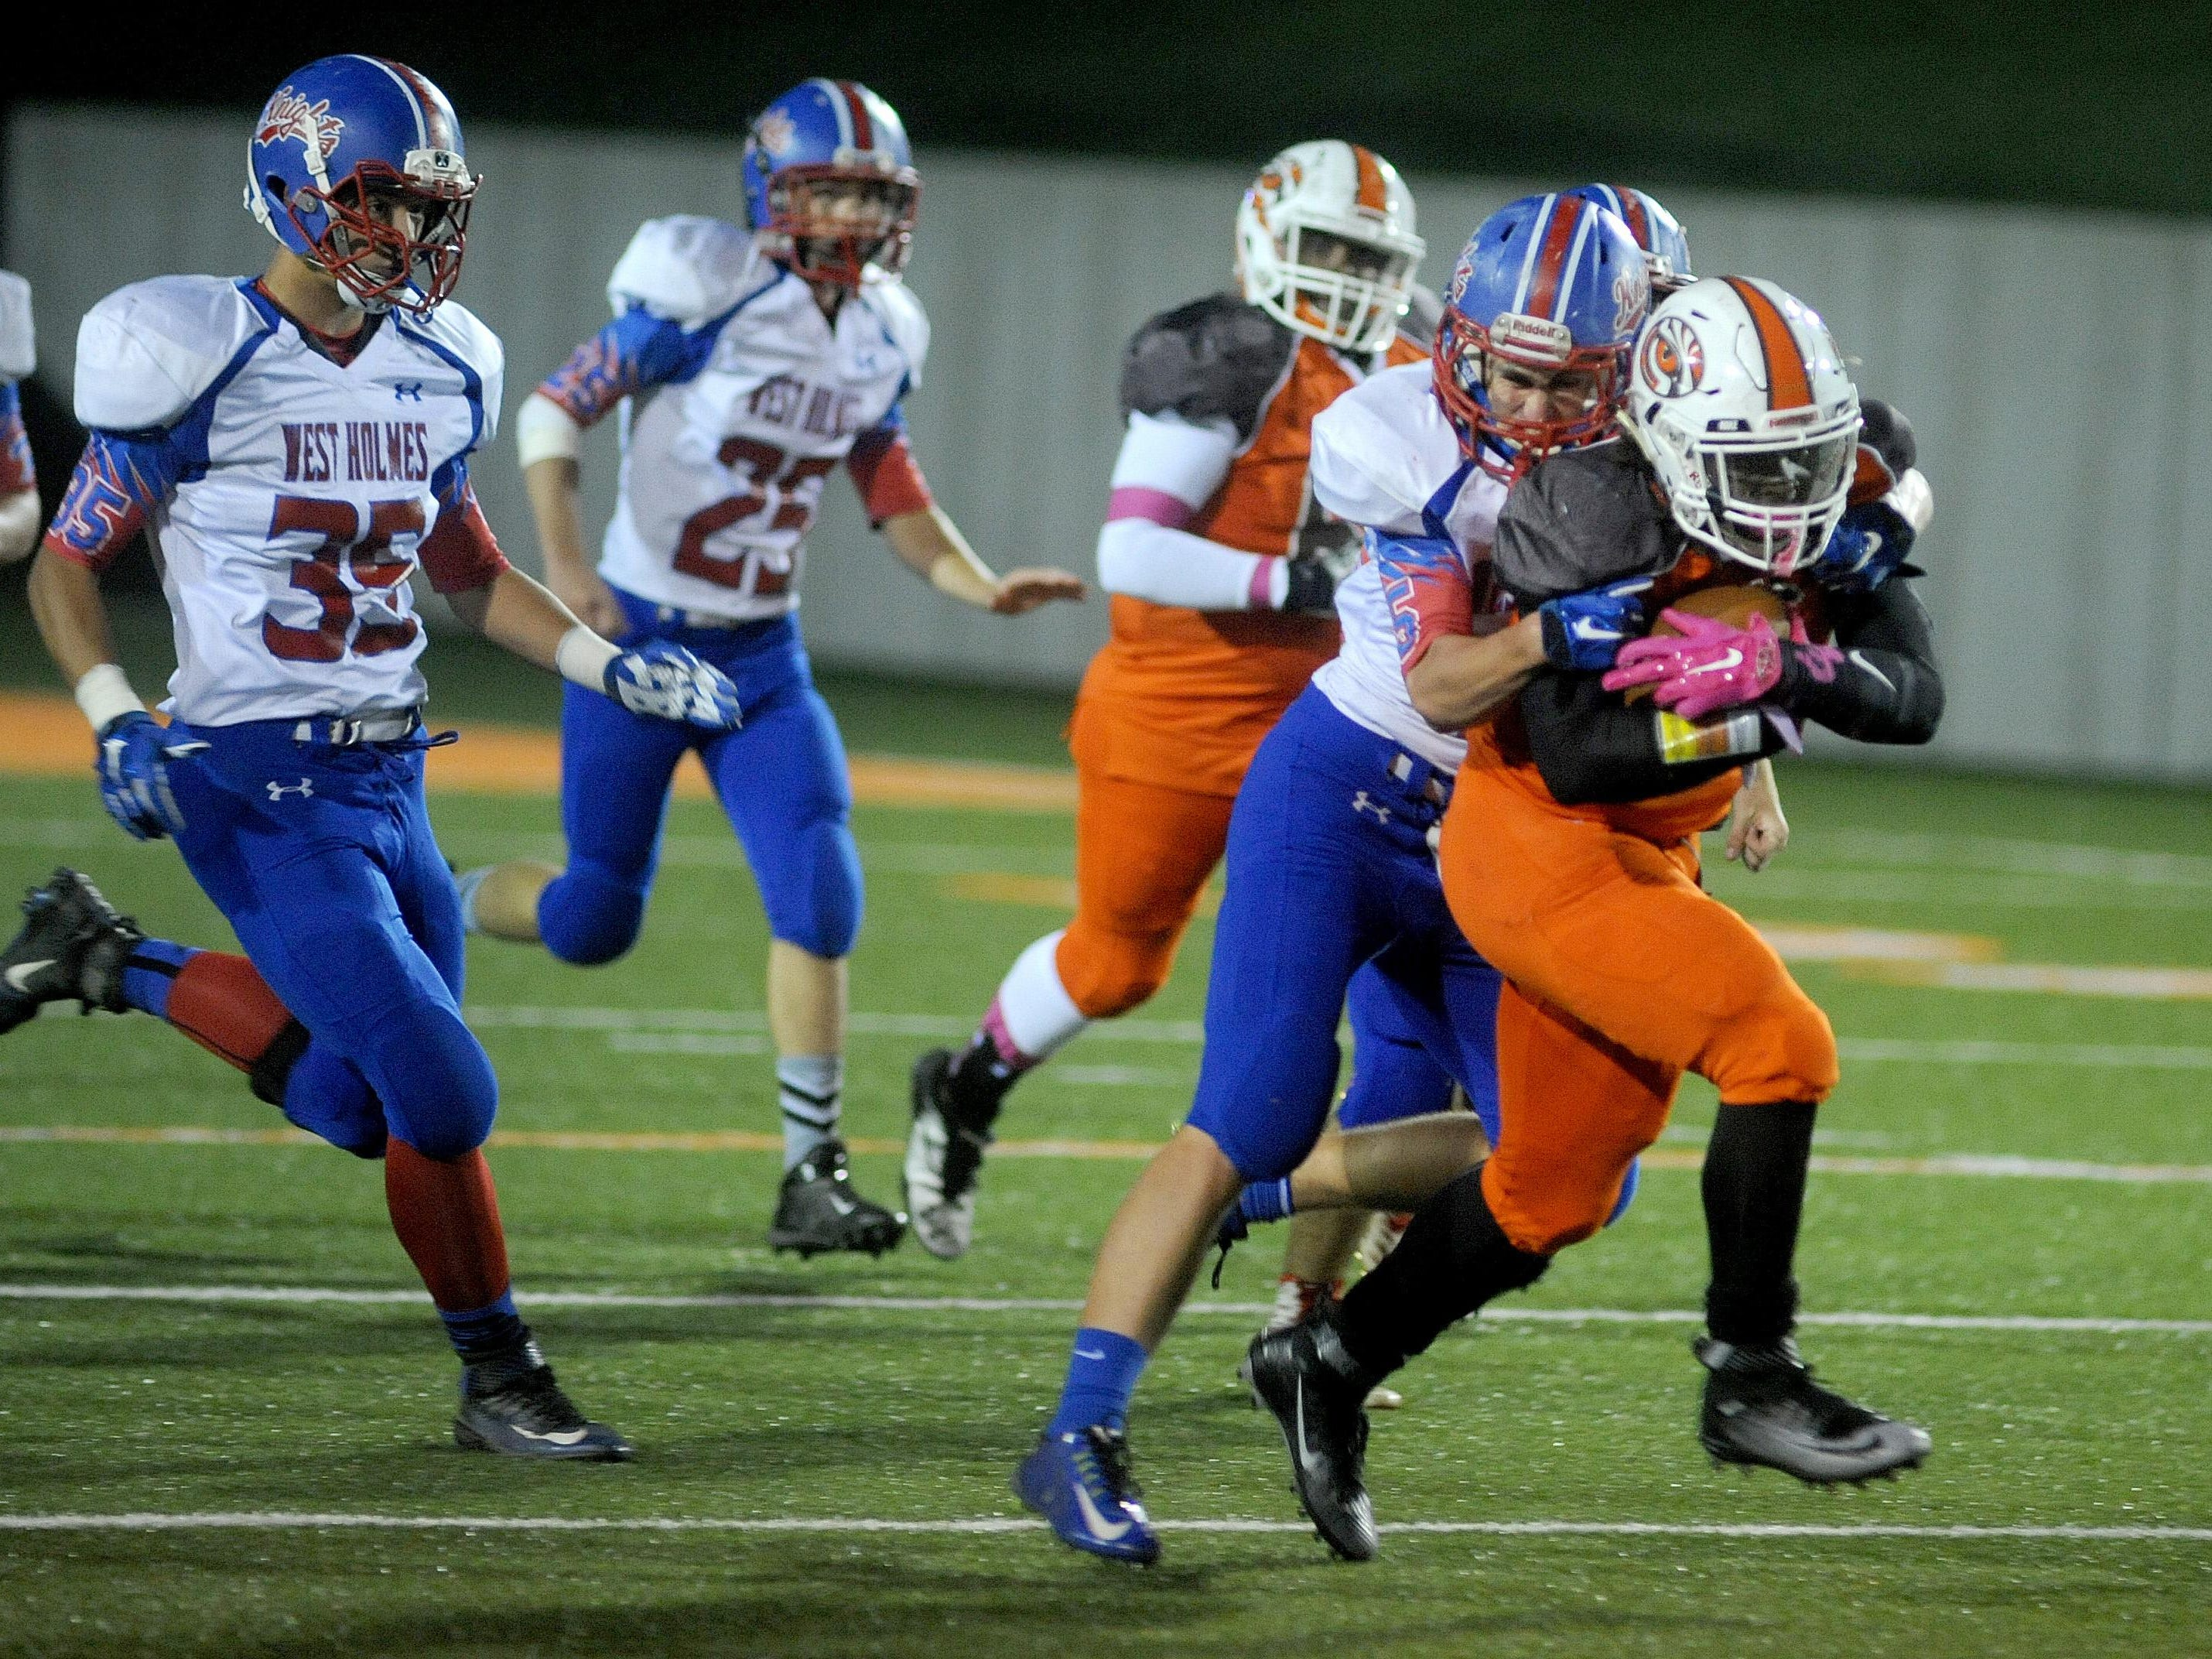 Connor Roach of West Holmes clutches on to Mansfield Senior's Tyquan Vickers after he picked up big yards on a long run Friday night at Arlin Field.